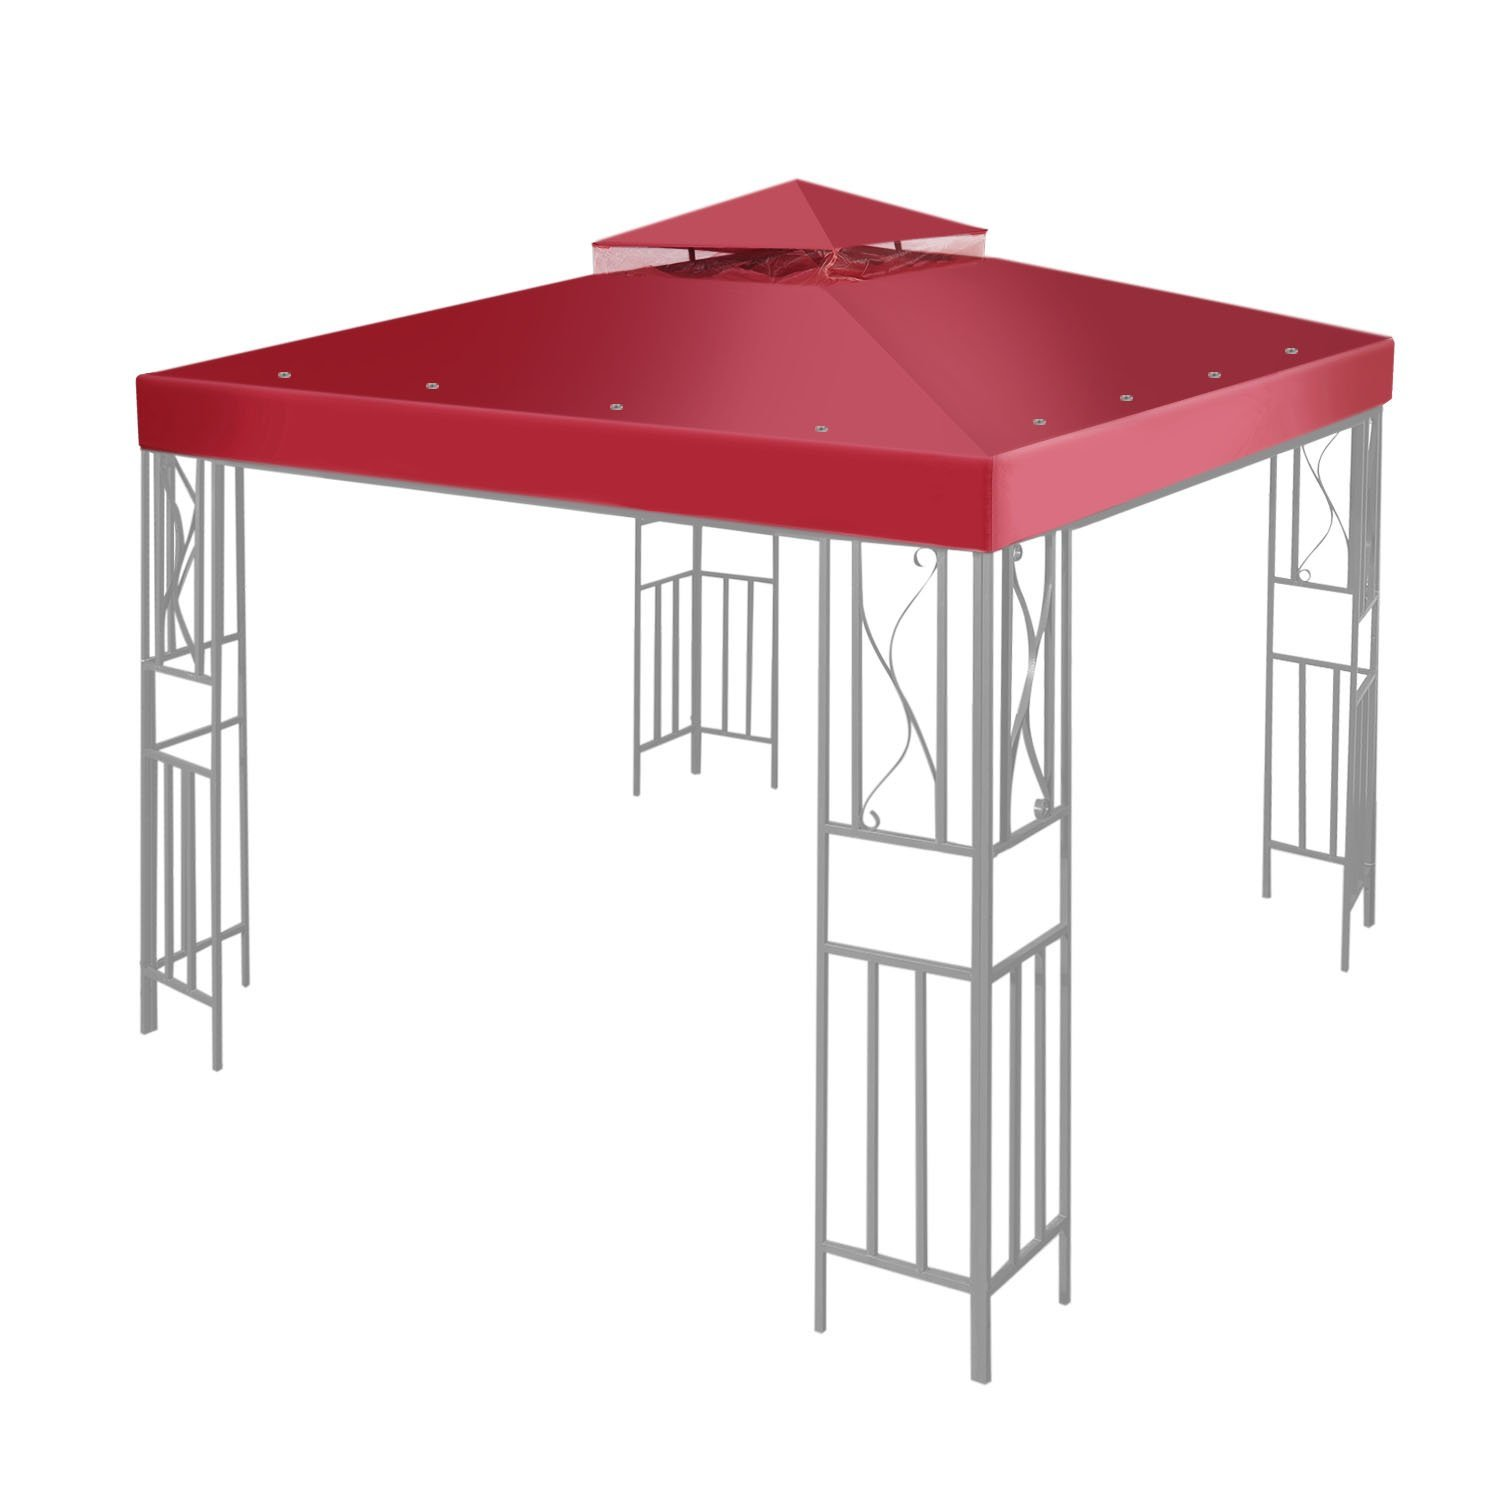 Flexzion 10' x 10' Gazebo Canopy Top Replacement Cover (Red) - Dual Tier Up Tent Accessory with Plain Edge Polyester UV30 Protection Water Resistant for Outdoor Patio Backyard Garden Lawn Sun Shade by Flexzion